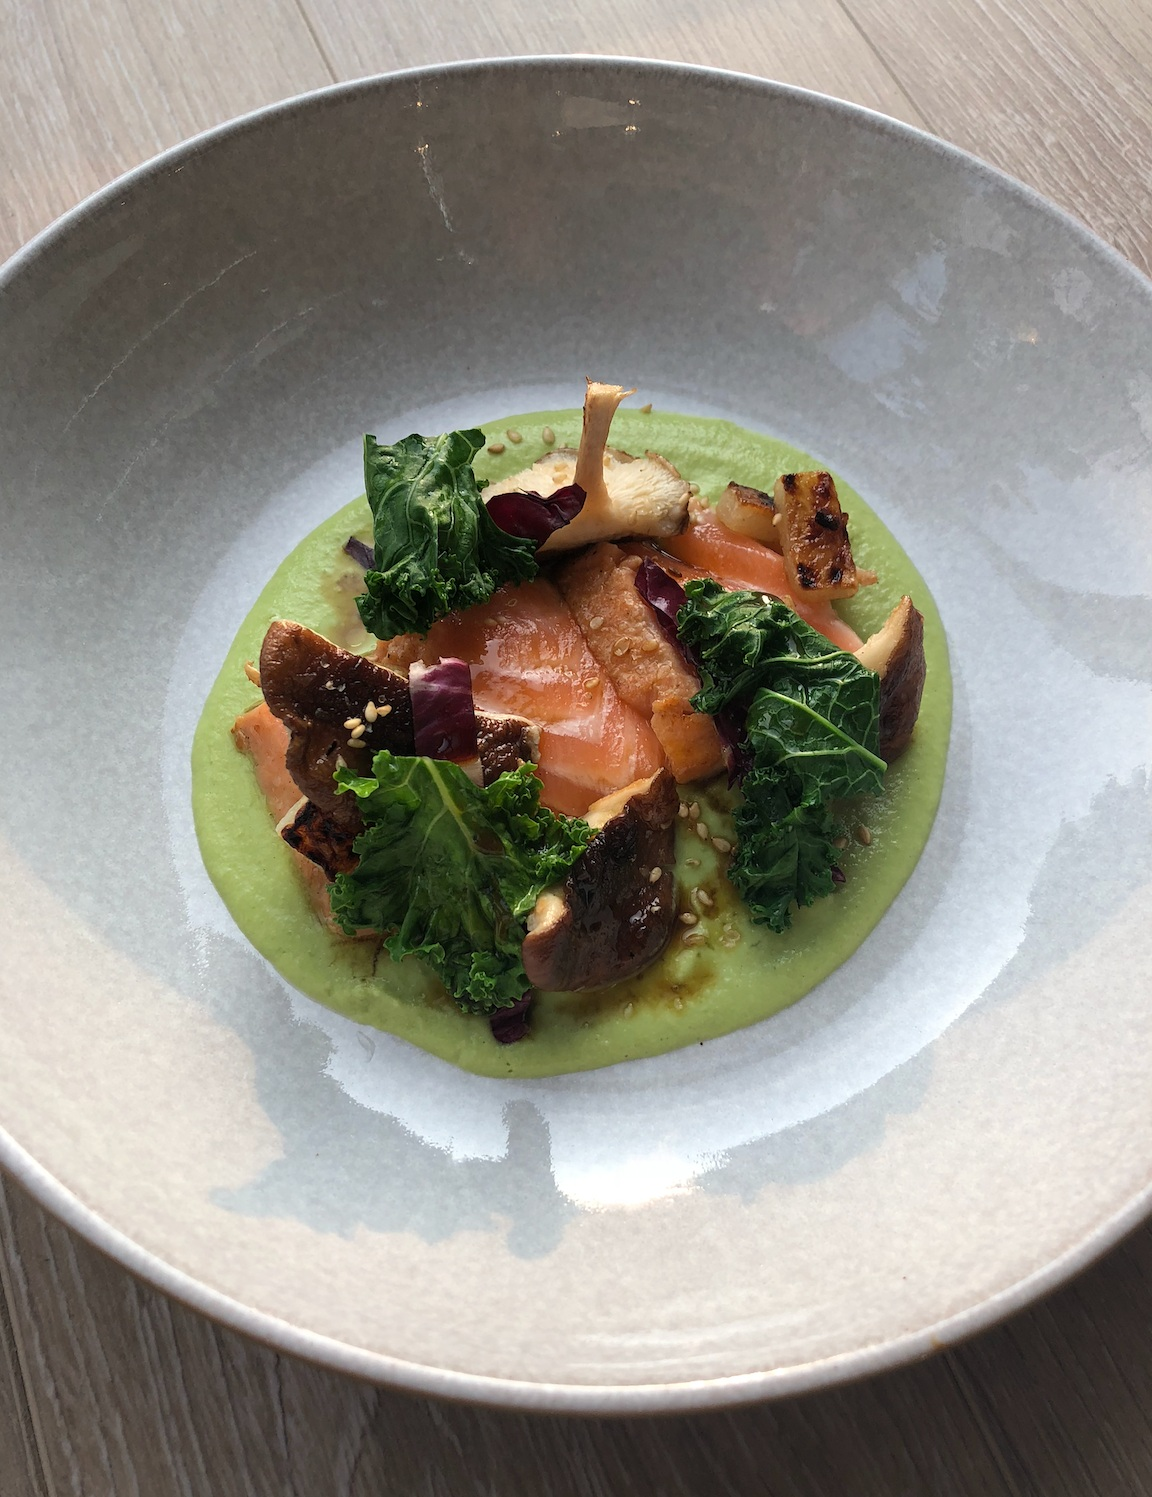 Tataki Maple Soy Glazed Salmon with Smoked Mushrooms and Blanched Radicchio over Green Apple Puree.